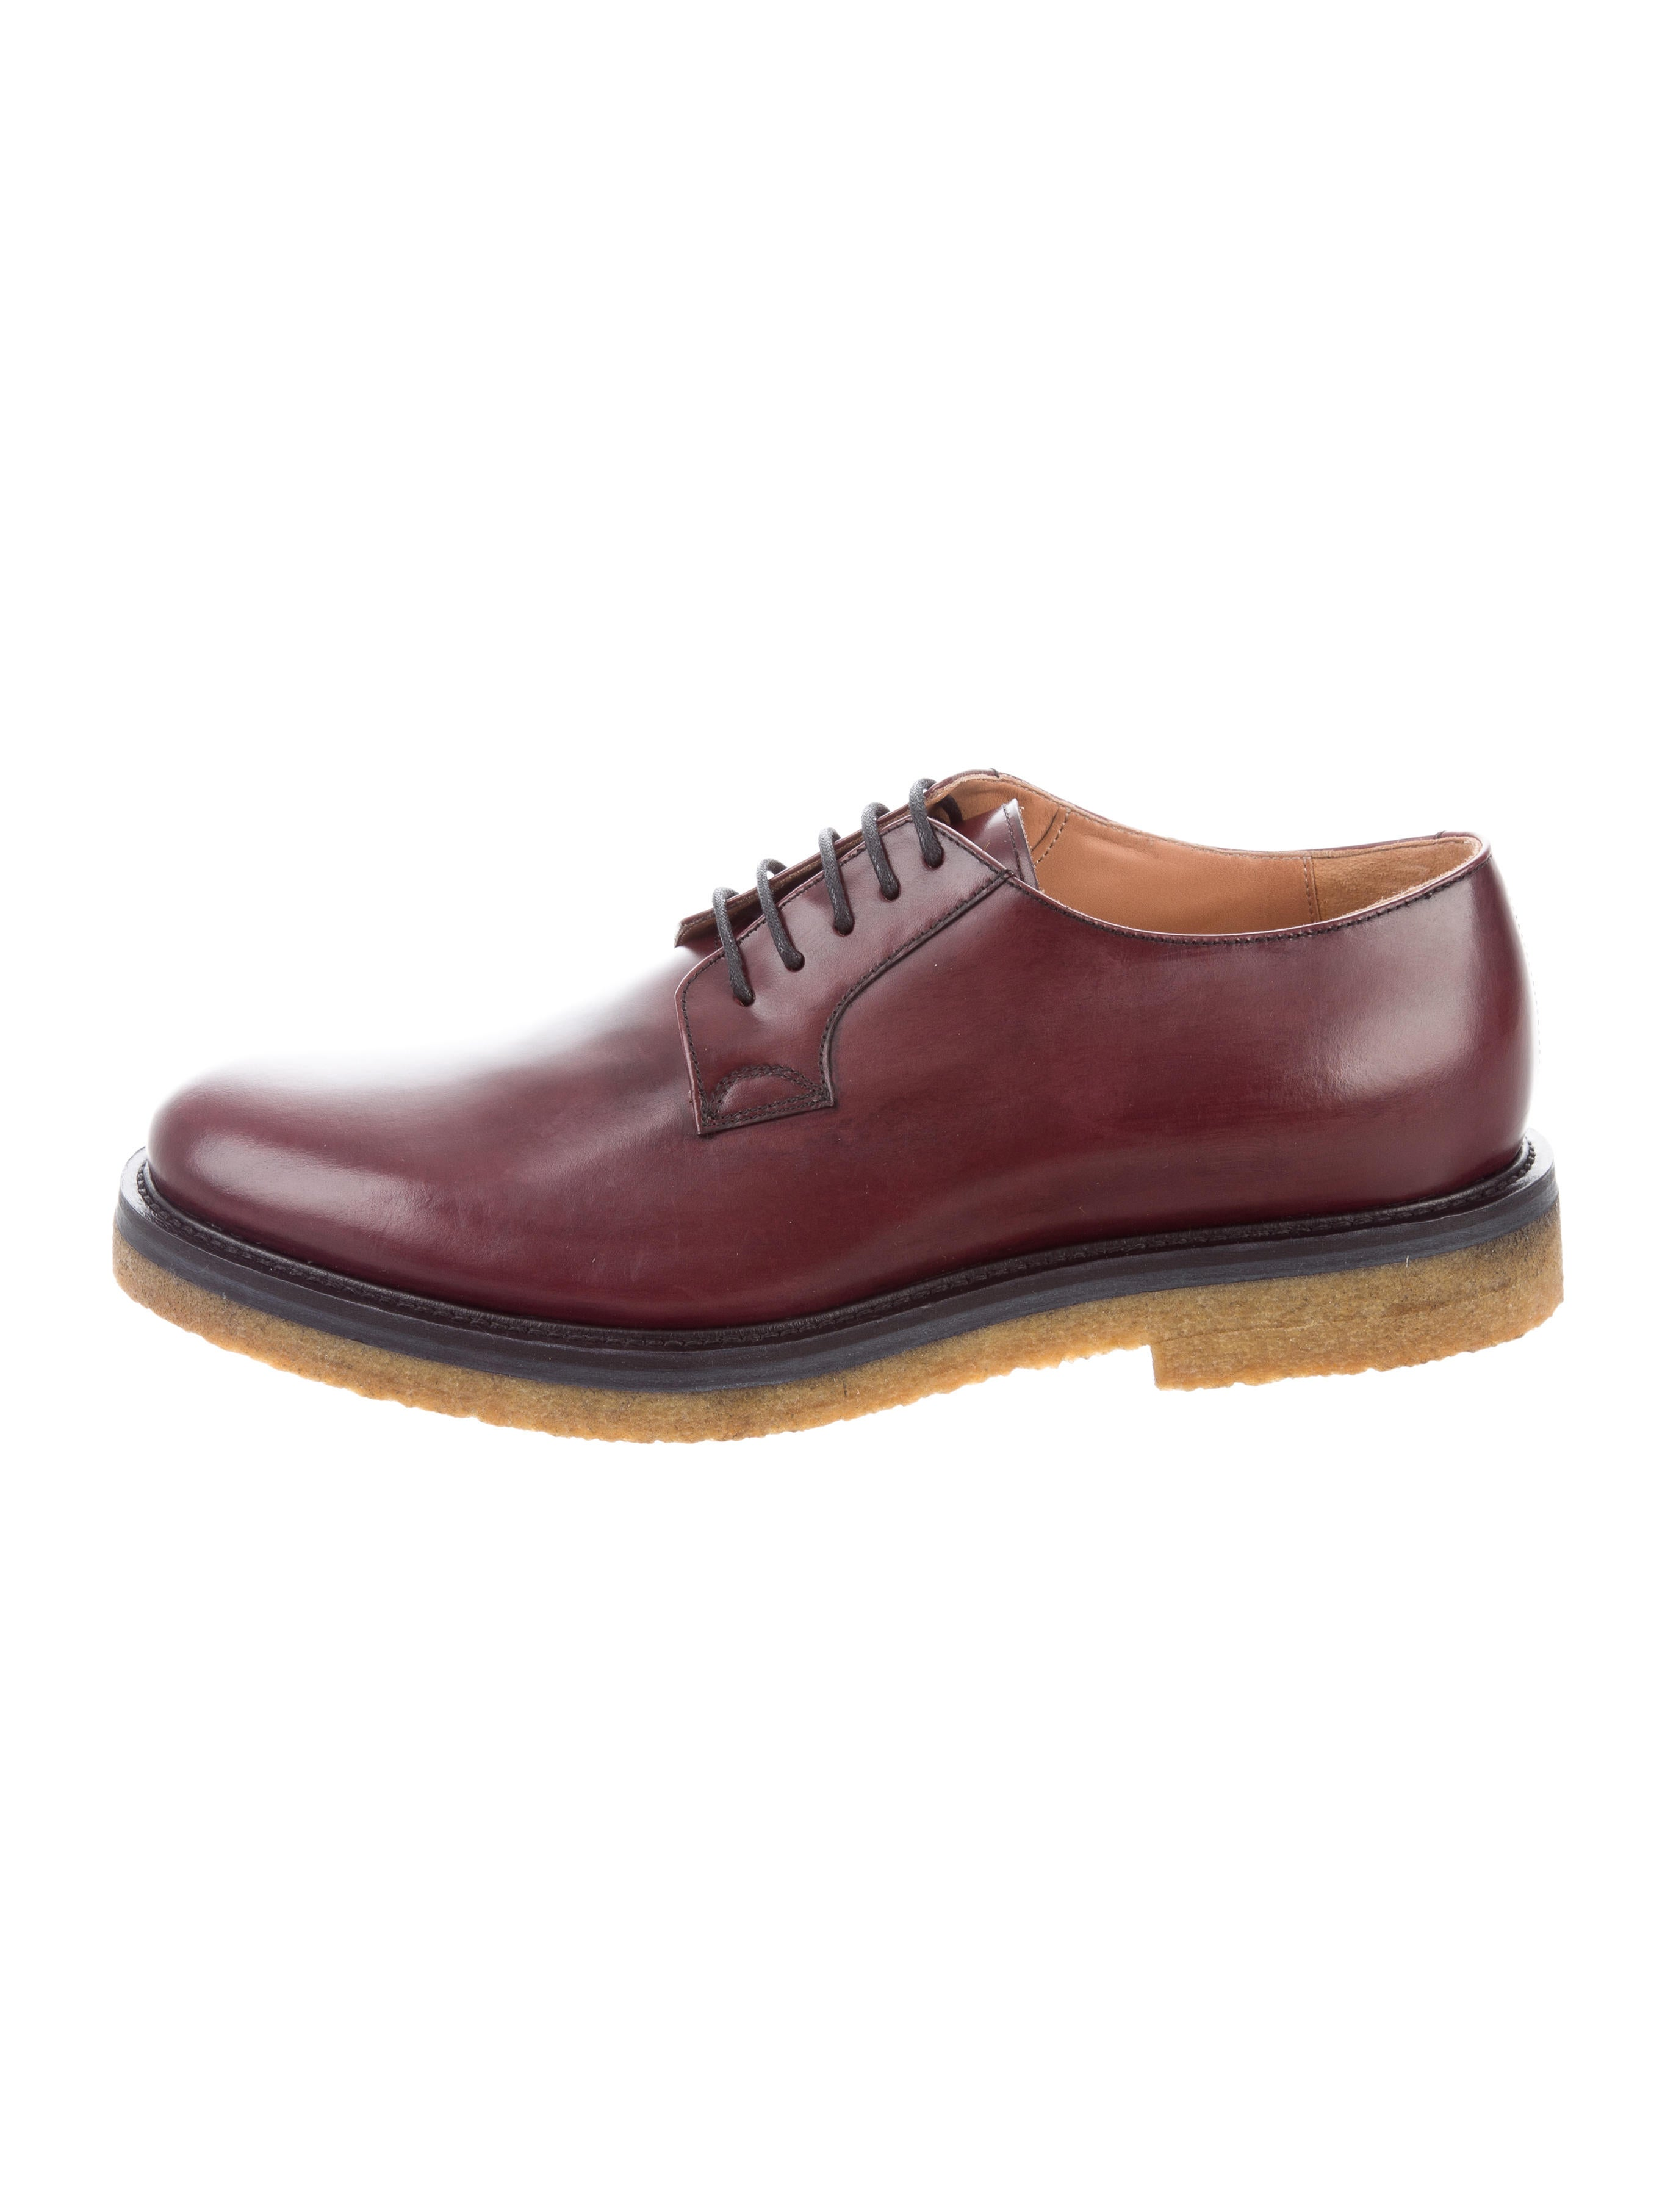 Dries Van Noten Leather Lace-Up Oxfords w/ Tags cheap sale 100% guaranteed clearance new cThgCS